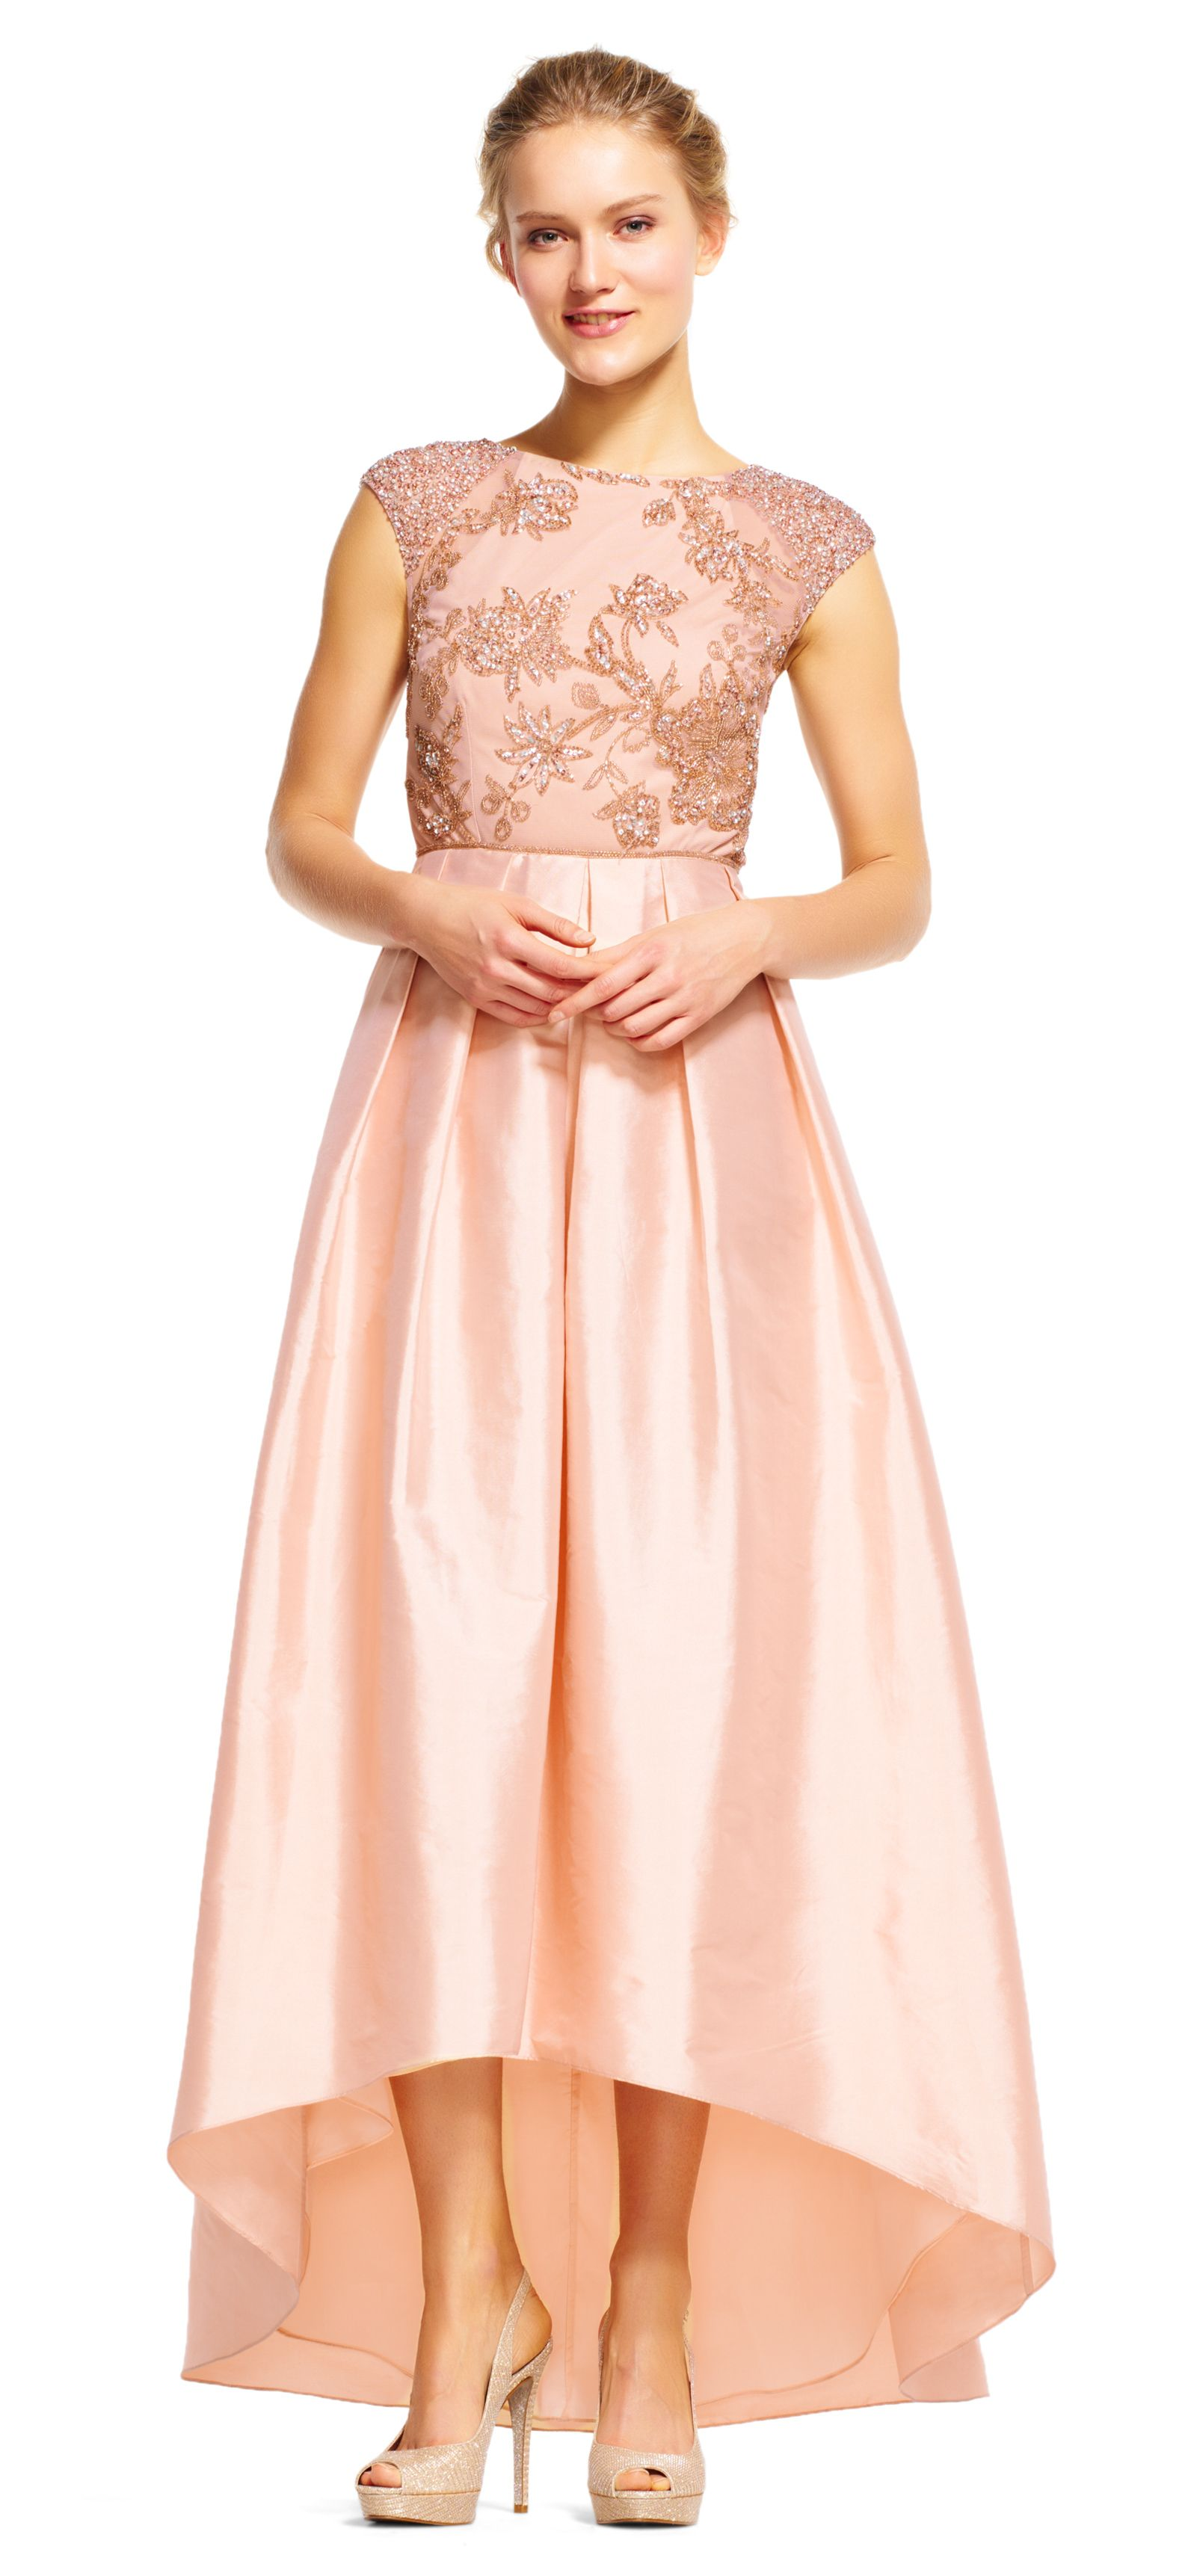 Dainty Details Draw The Eye To This Feminine Ball Gown This Formal